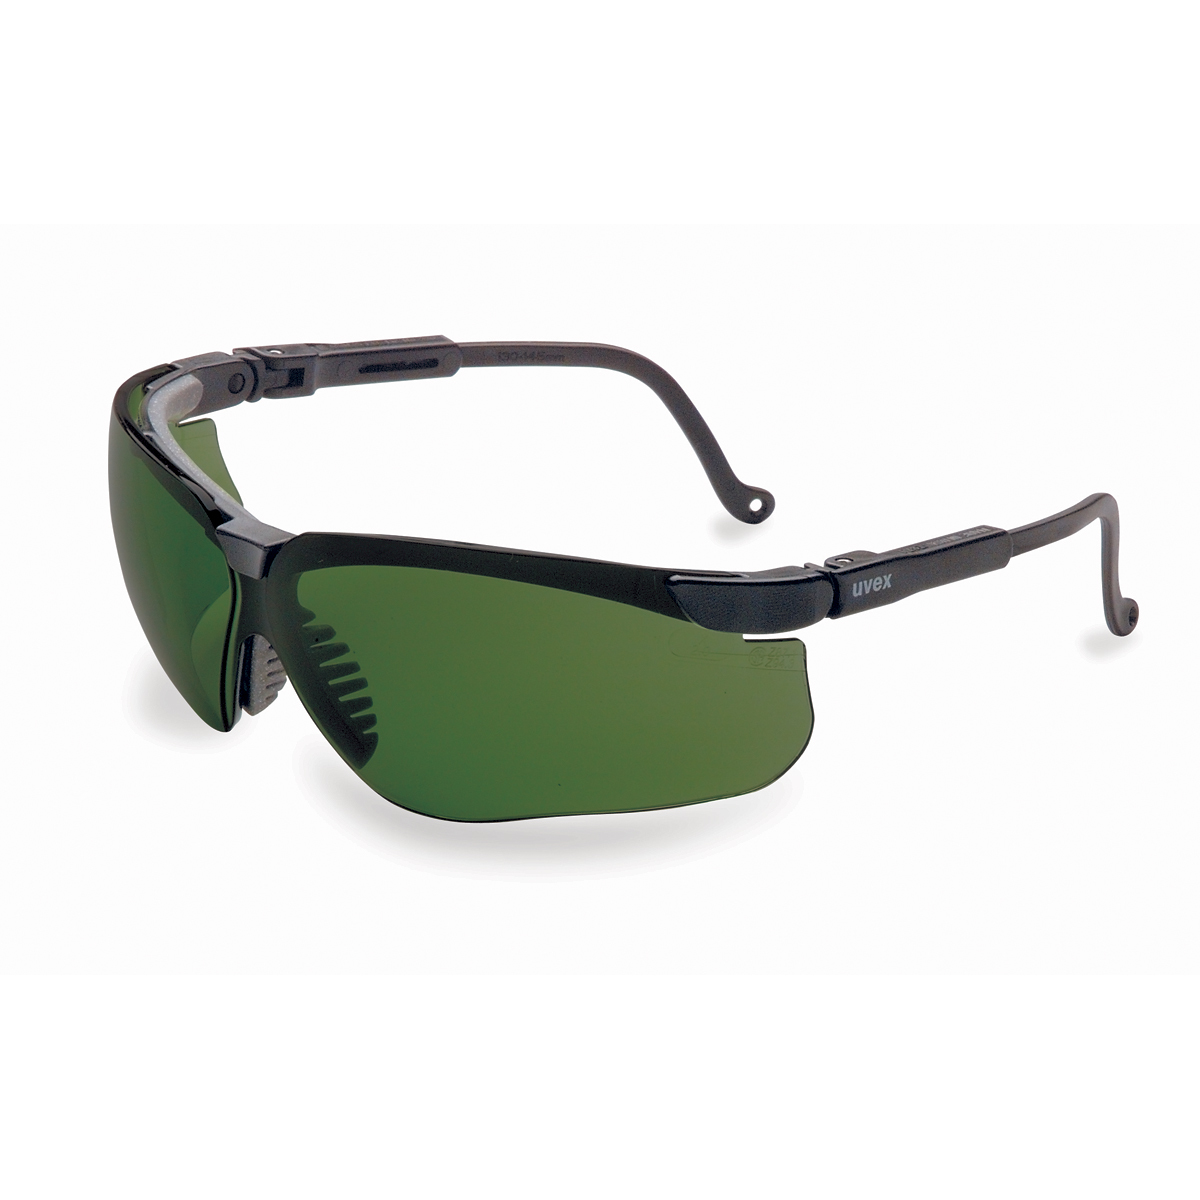 548a15b021d Honeywell Uvex Genesis® Black Safety Glasses With Shade 3.0  Anti-Scratch Hard Coat